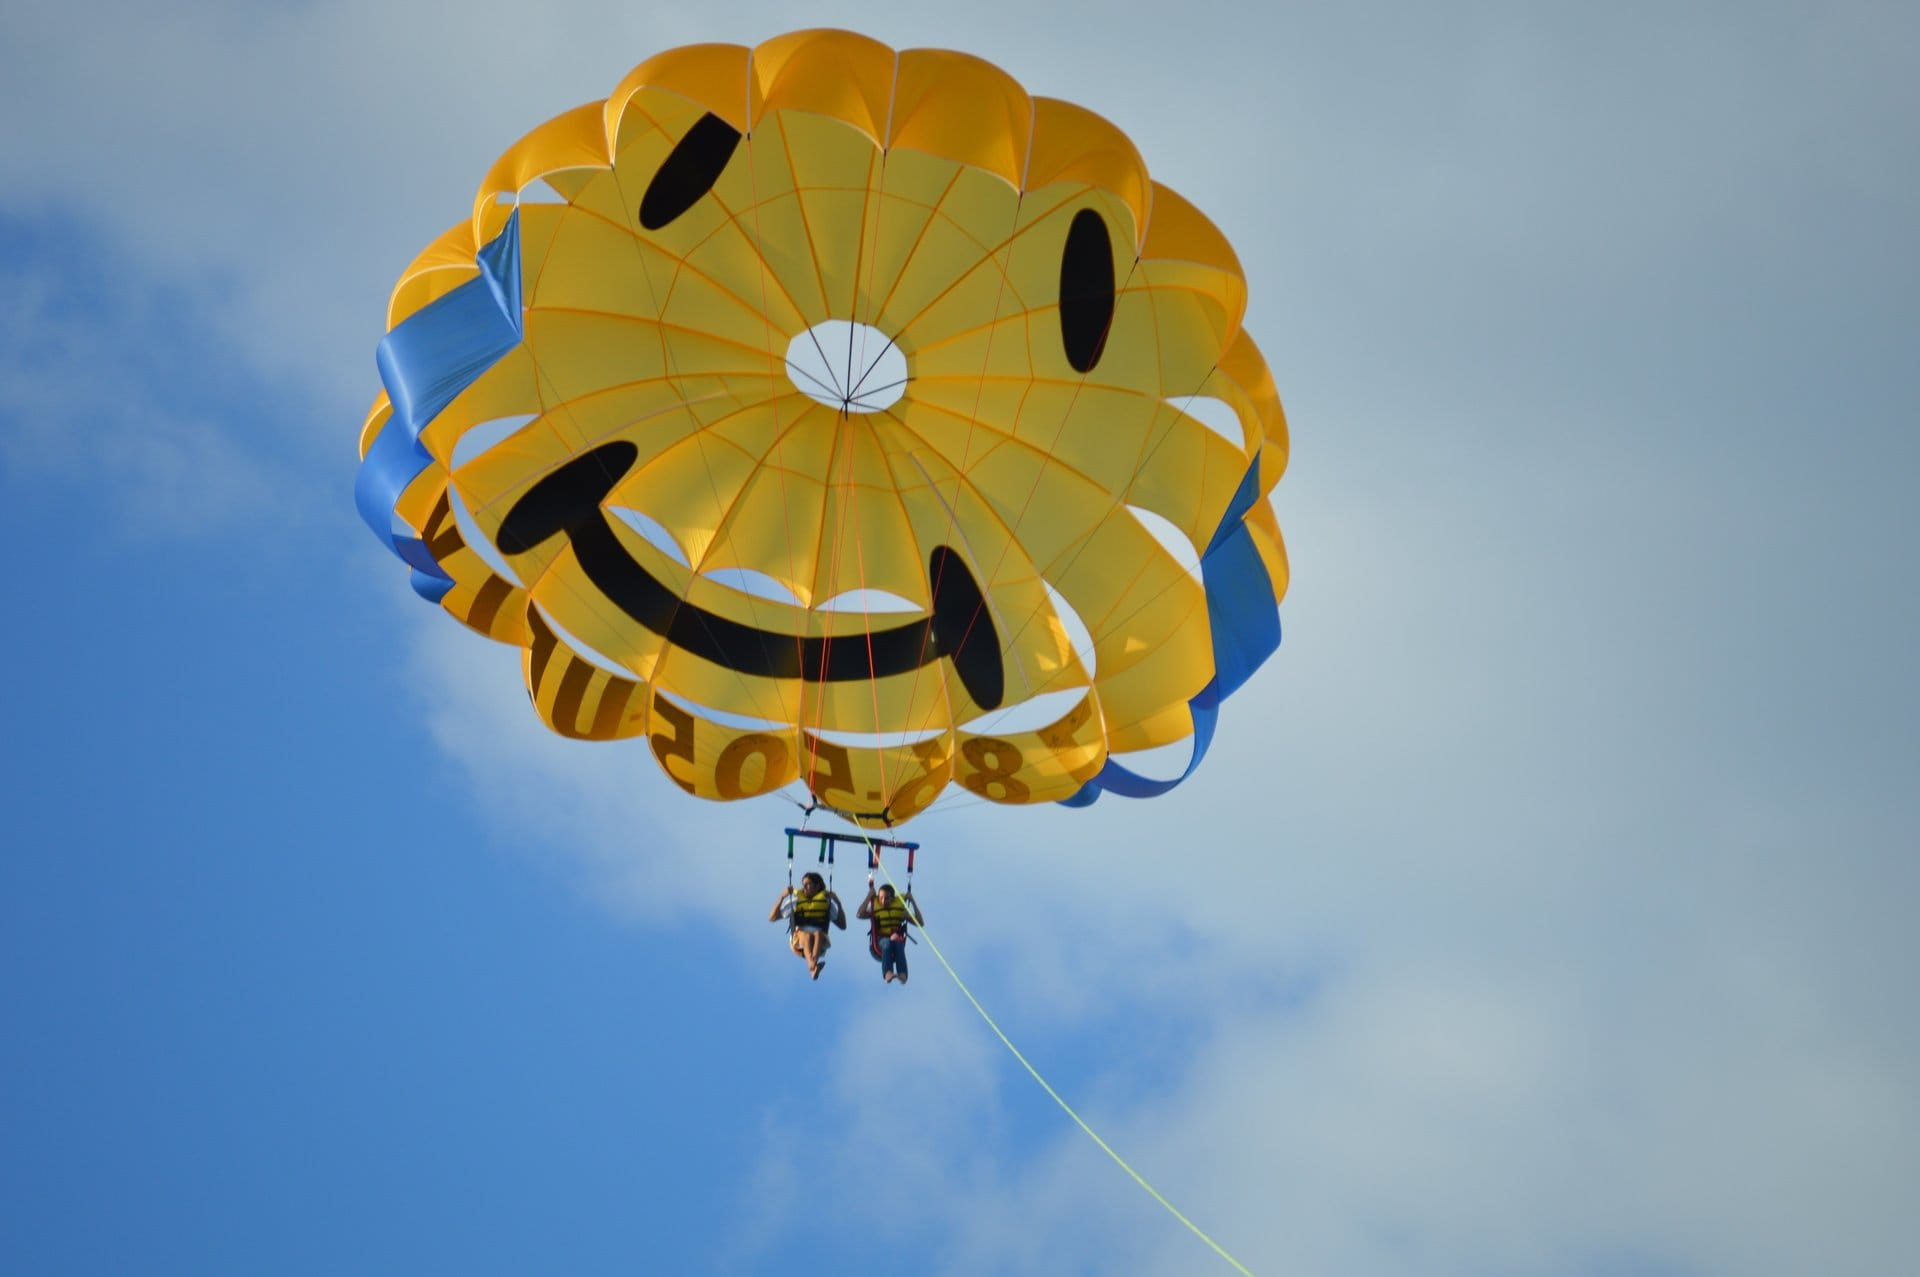 Parasail parachute with Miami Watersports smiley face